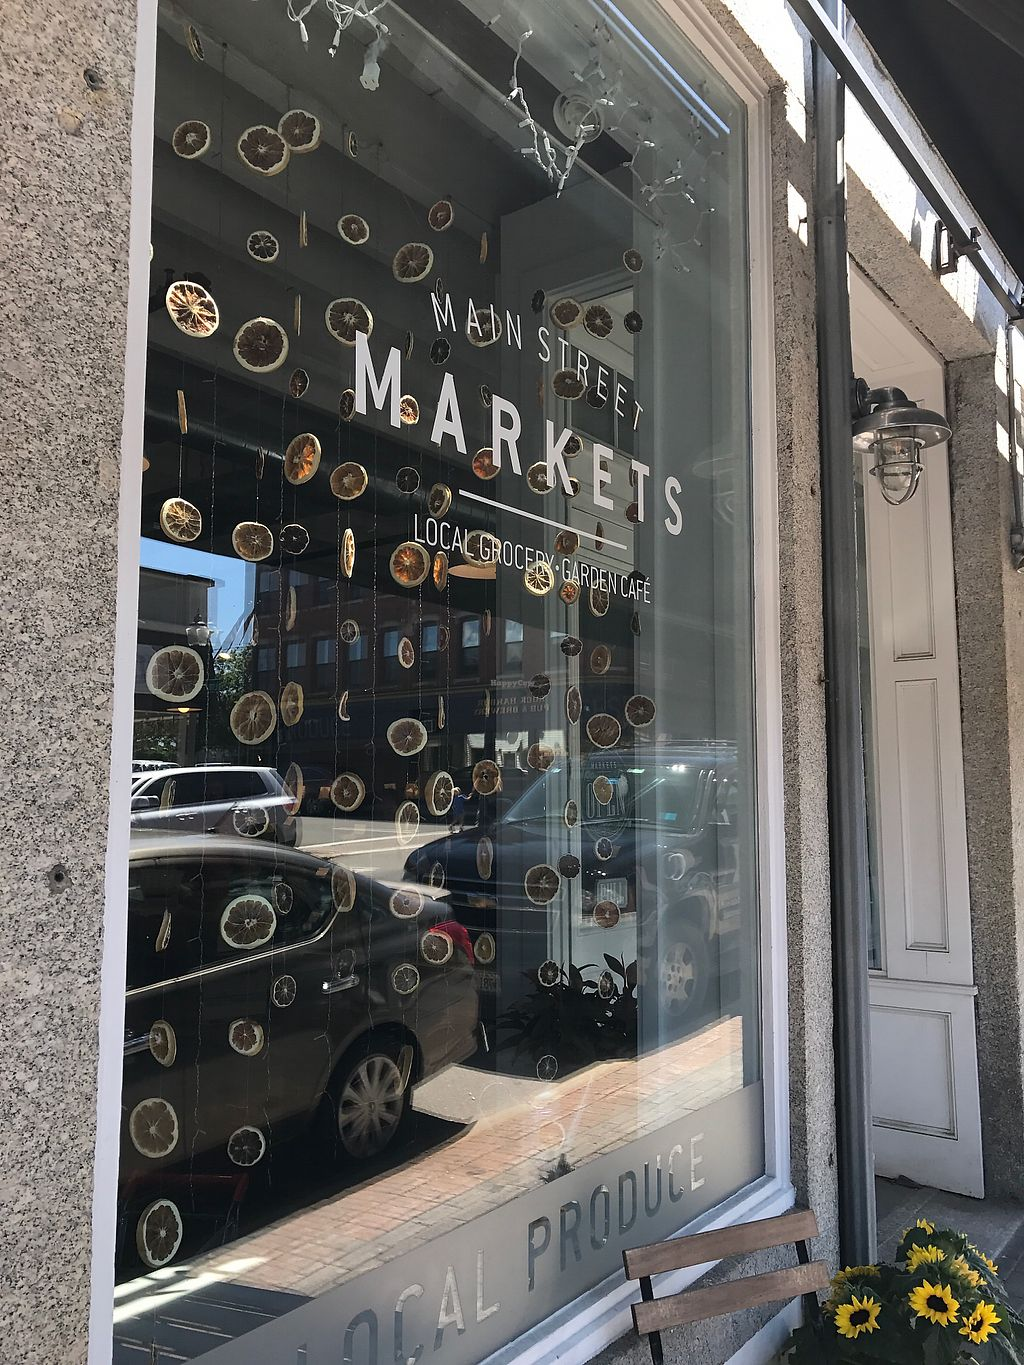 """Photo of Main Street Markets and Garden Cafe  by <a href=""""/members/profile/Sarah%20P"""">Sarah P</a> <br/>front <br/> July 27, 2017  - <a href='/contact/abuse/image/97278/285595'>Report</a>"""